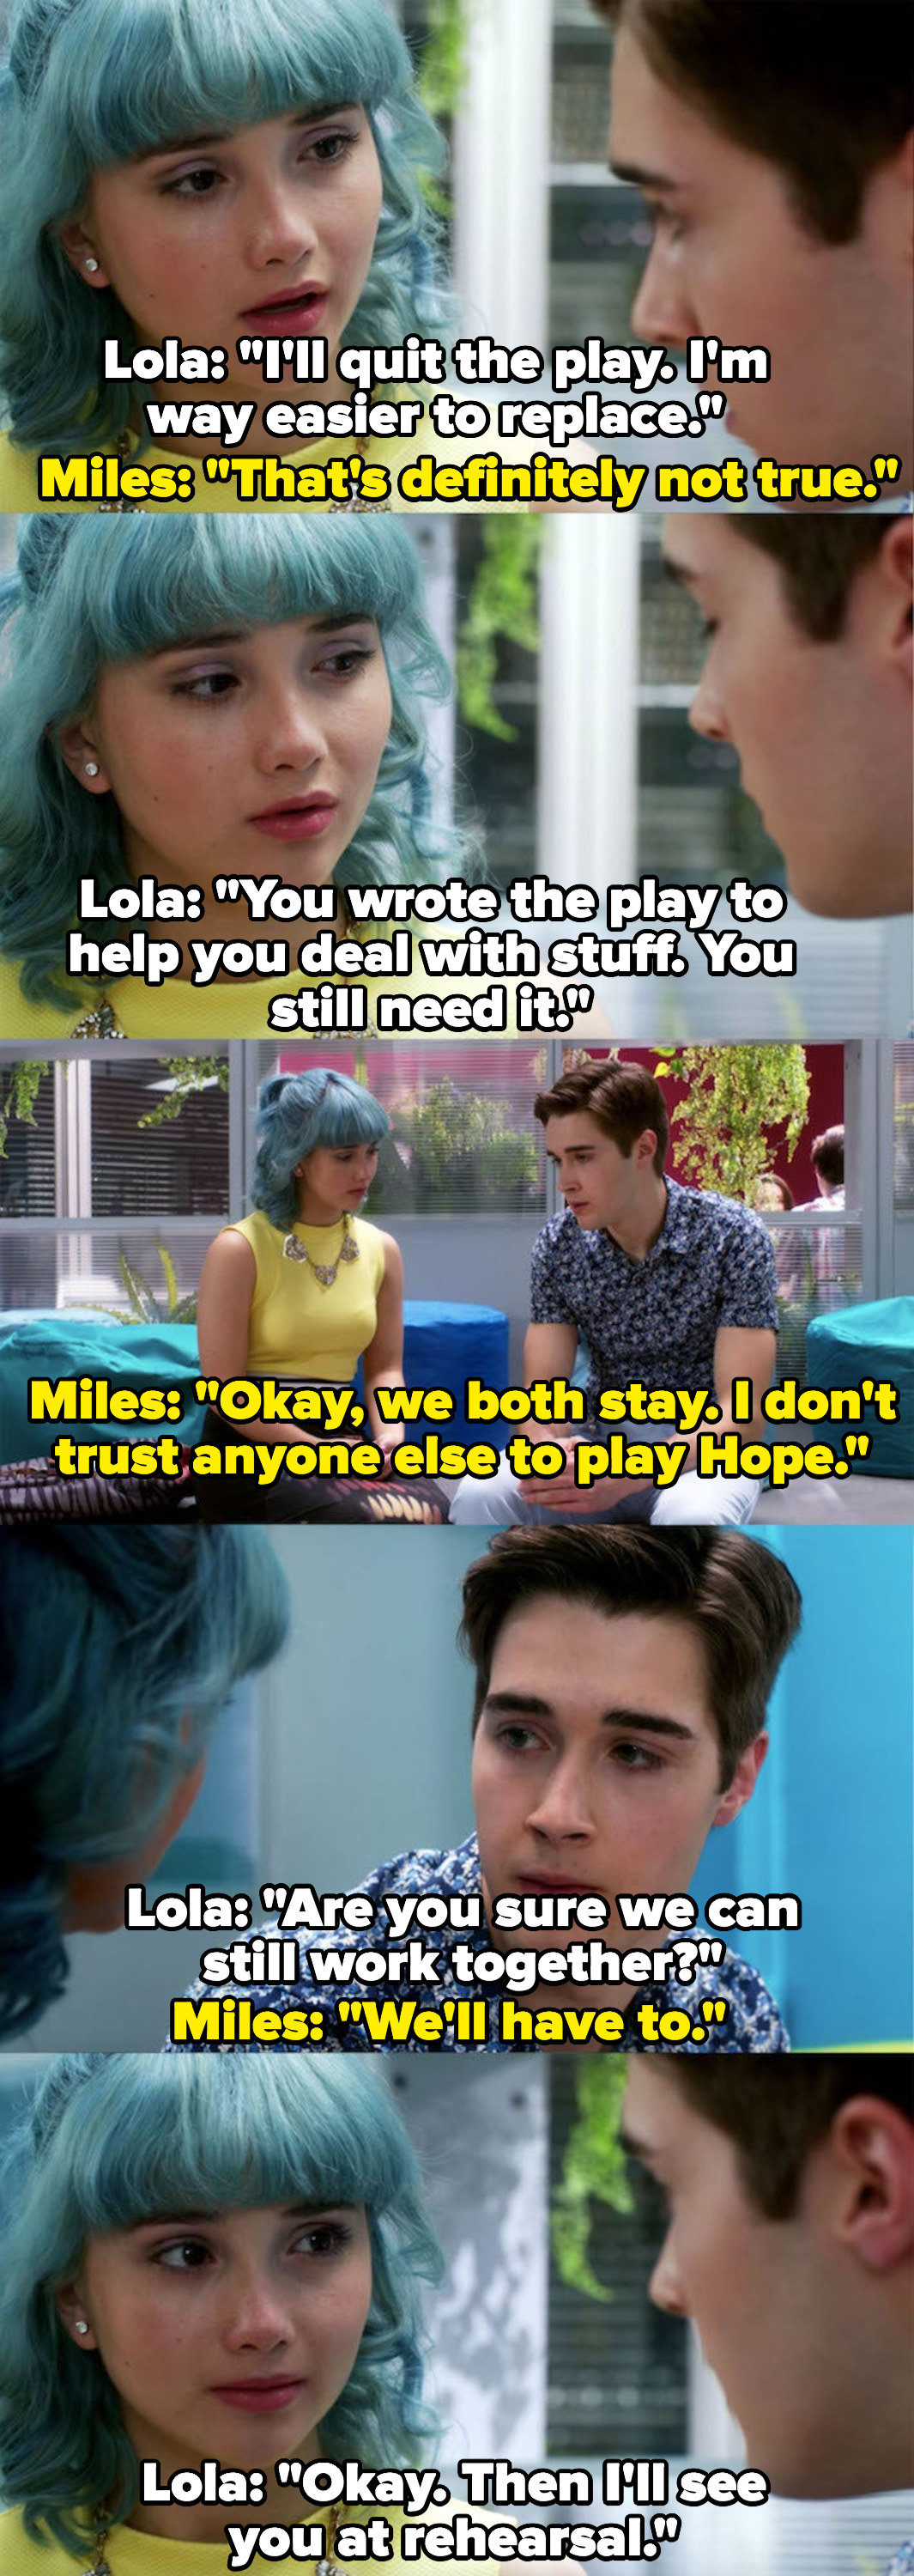 Lola persuades Miles not to quit the play because he still needs it, he says he doesn't trust anyone to replace her role, they agree to still work together